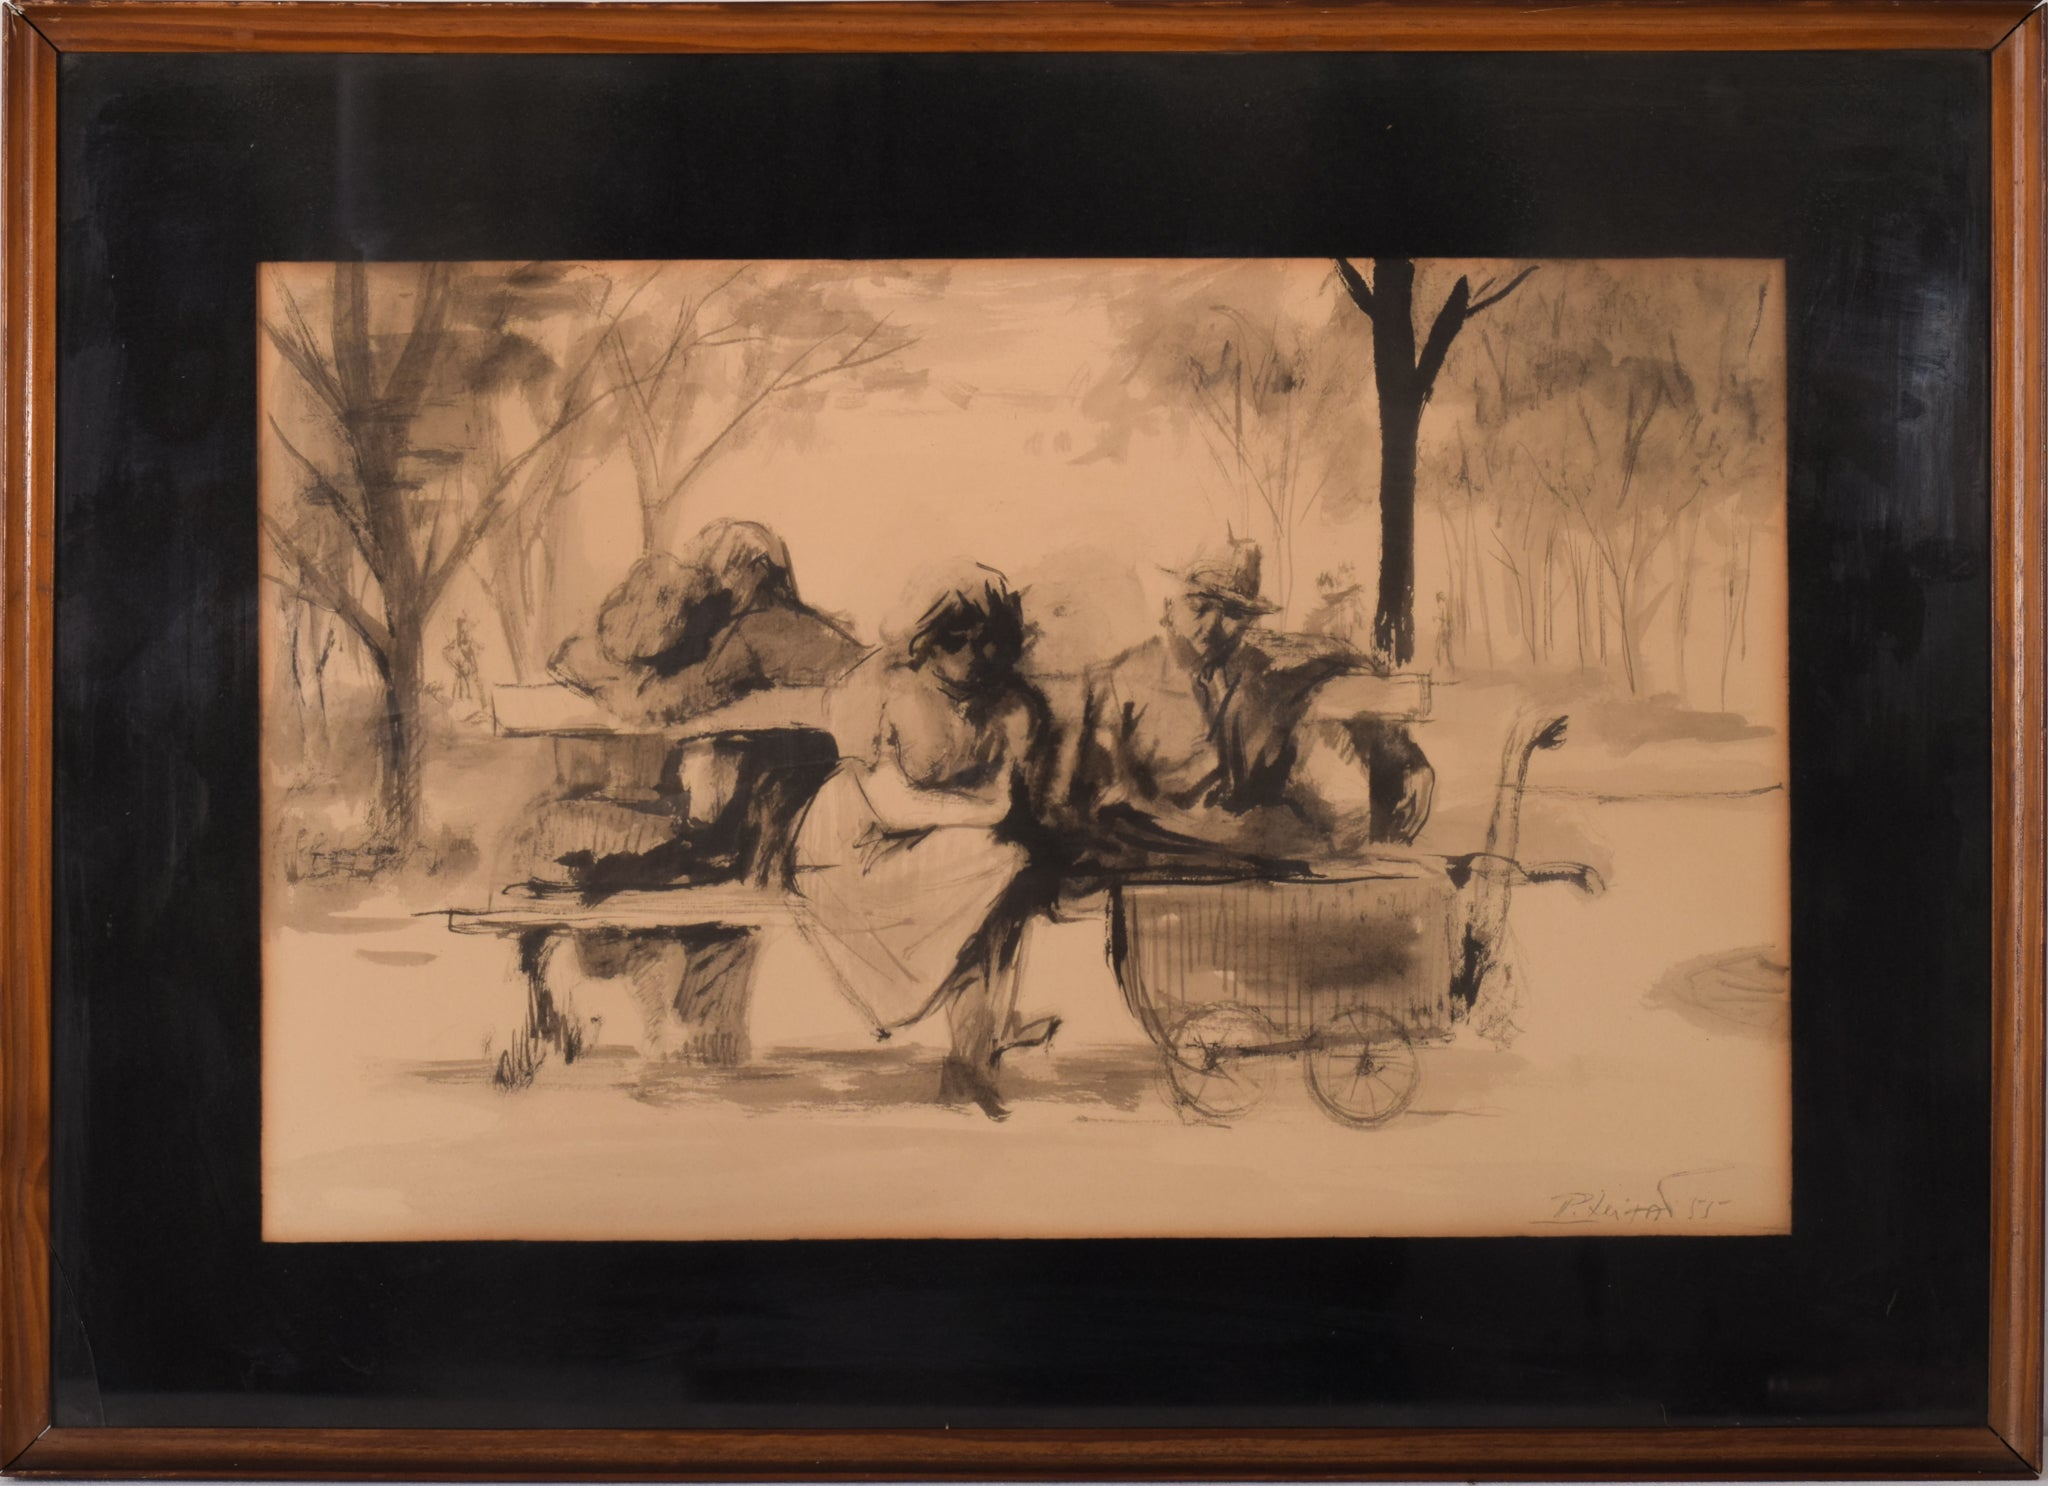 Watercolour Figures on Bench with Pram signed and dated P Leitao (Pedro Leitao 1922-2009)